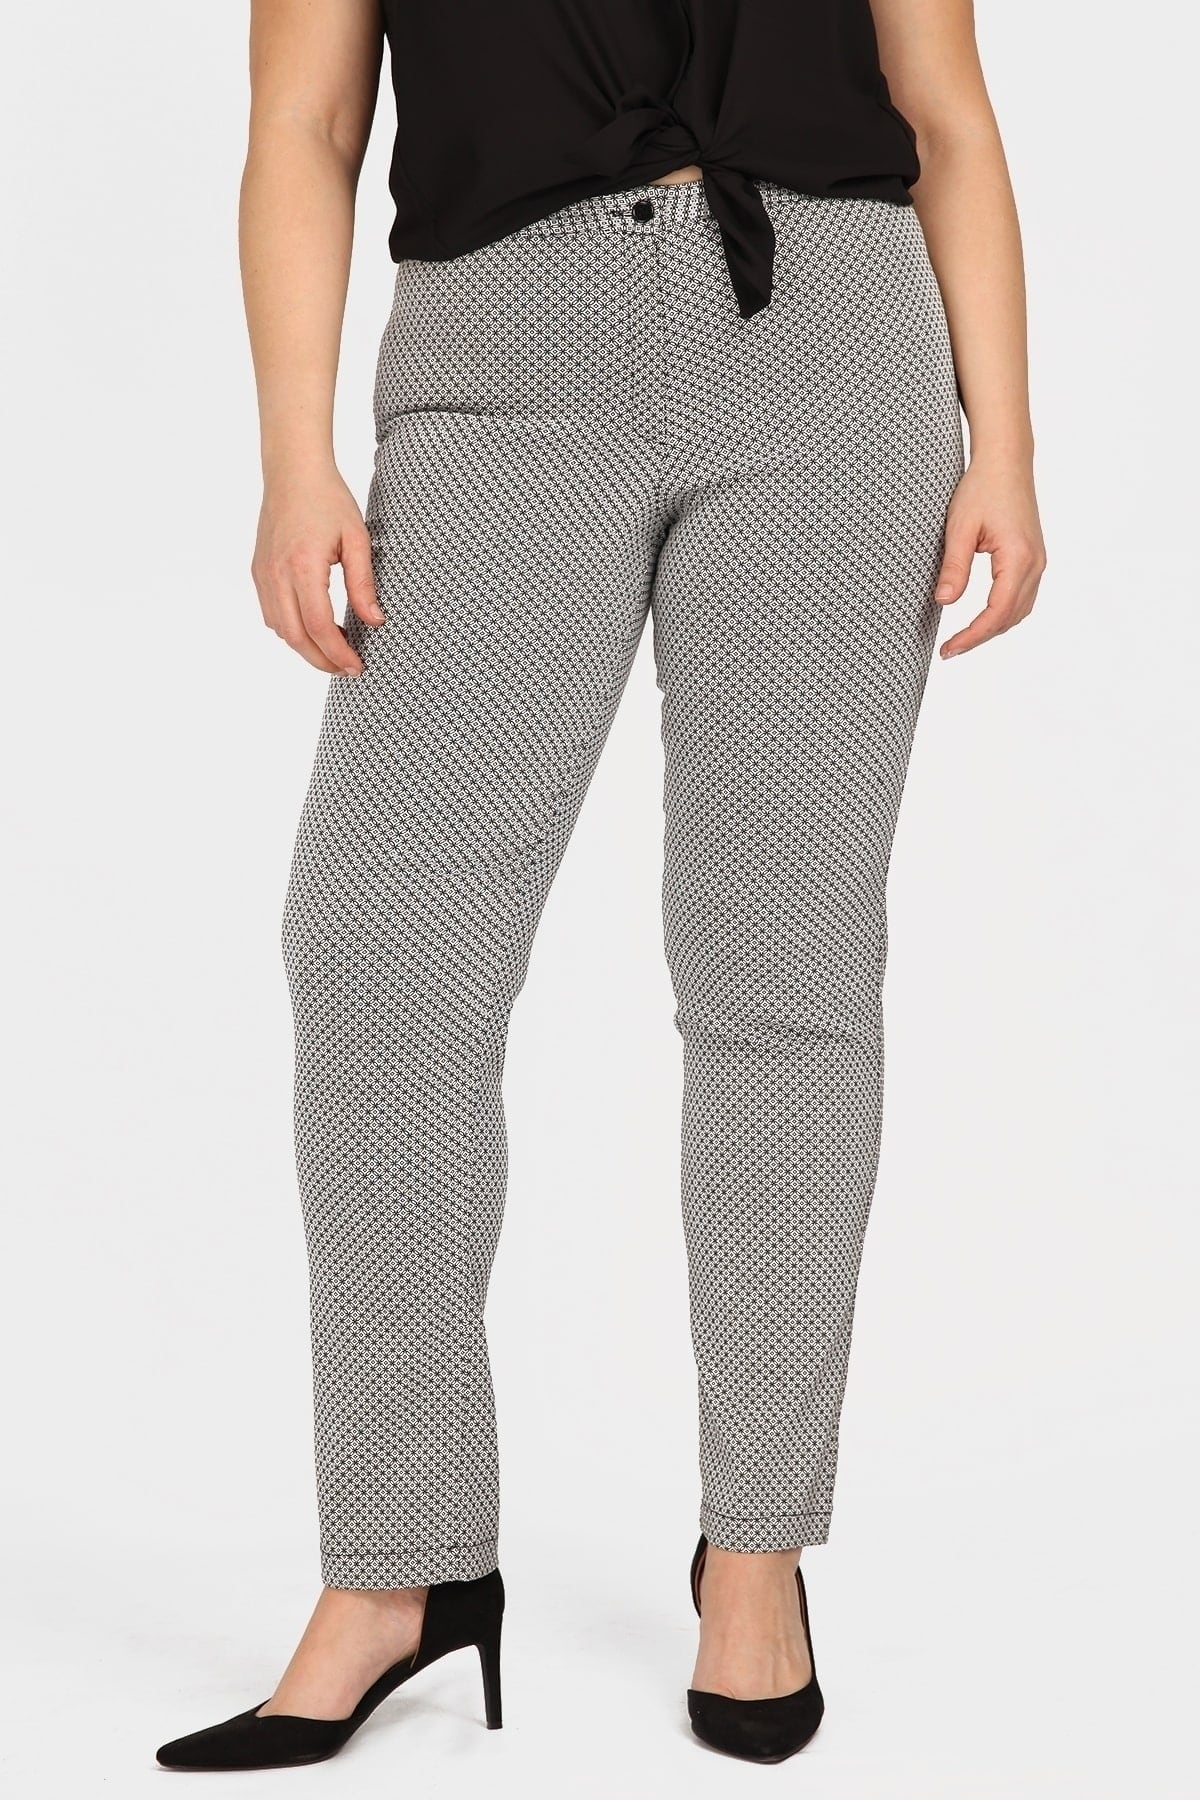 Jacquard trousers in staight-cut line